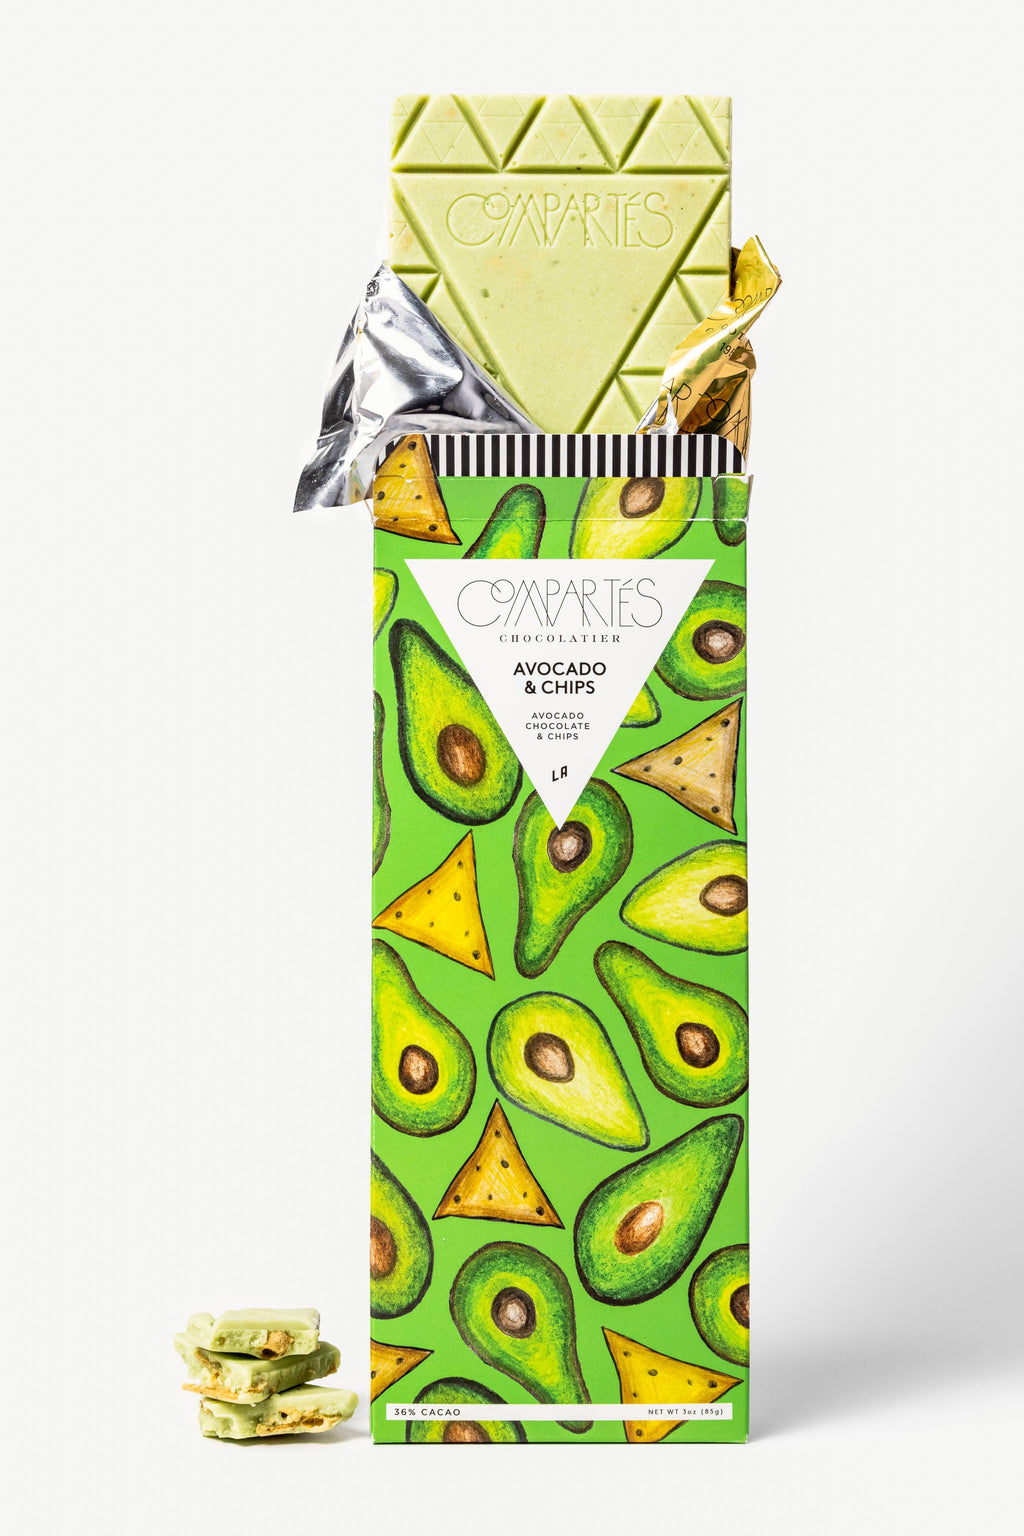 Compartes Chocolate - Avocado & Chips Chocolate Bar